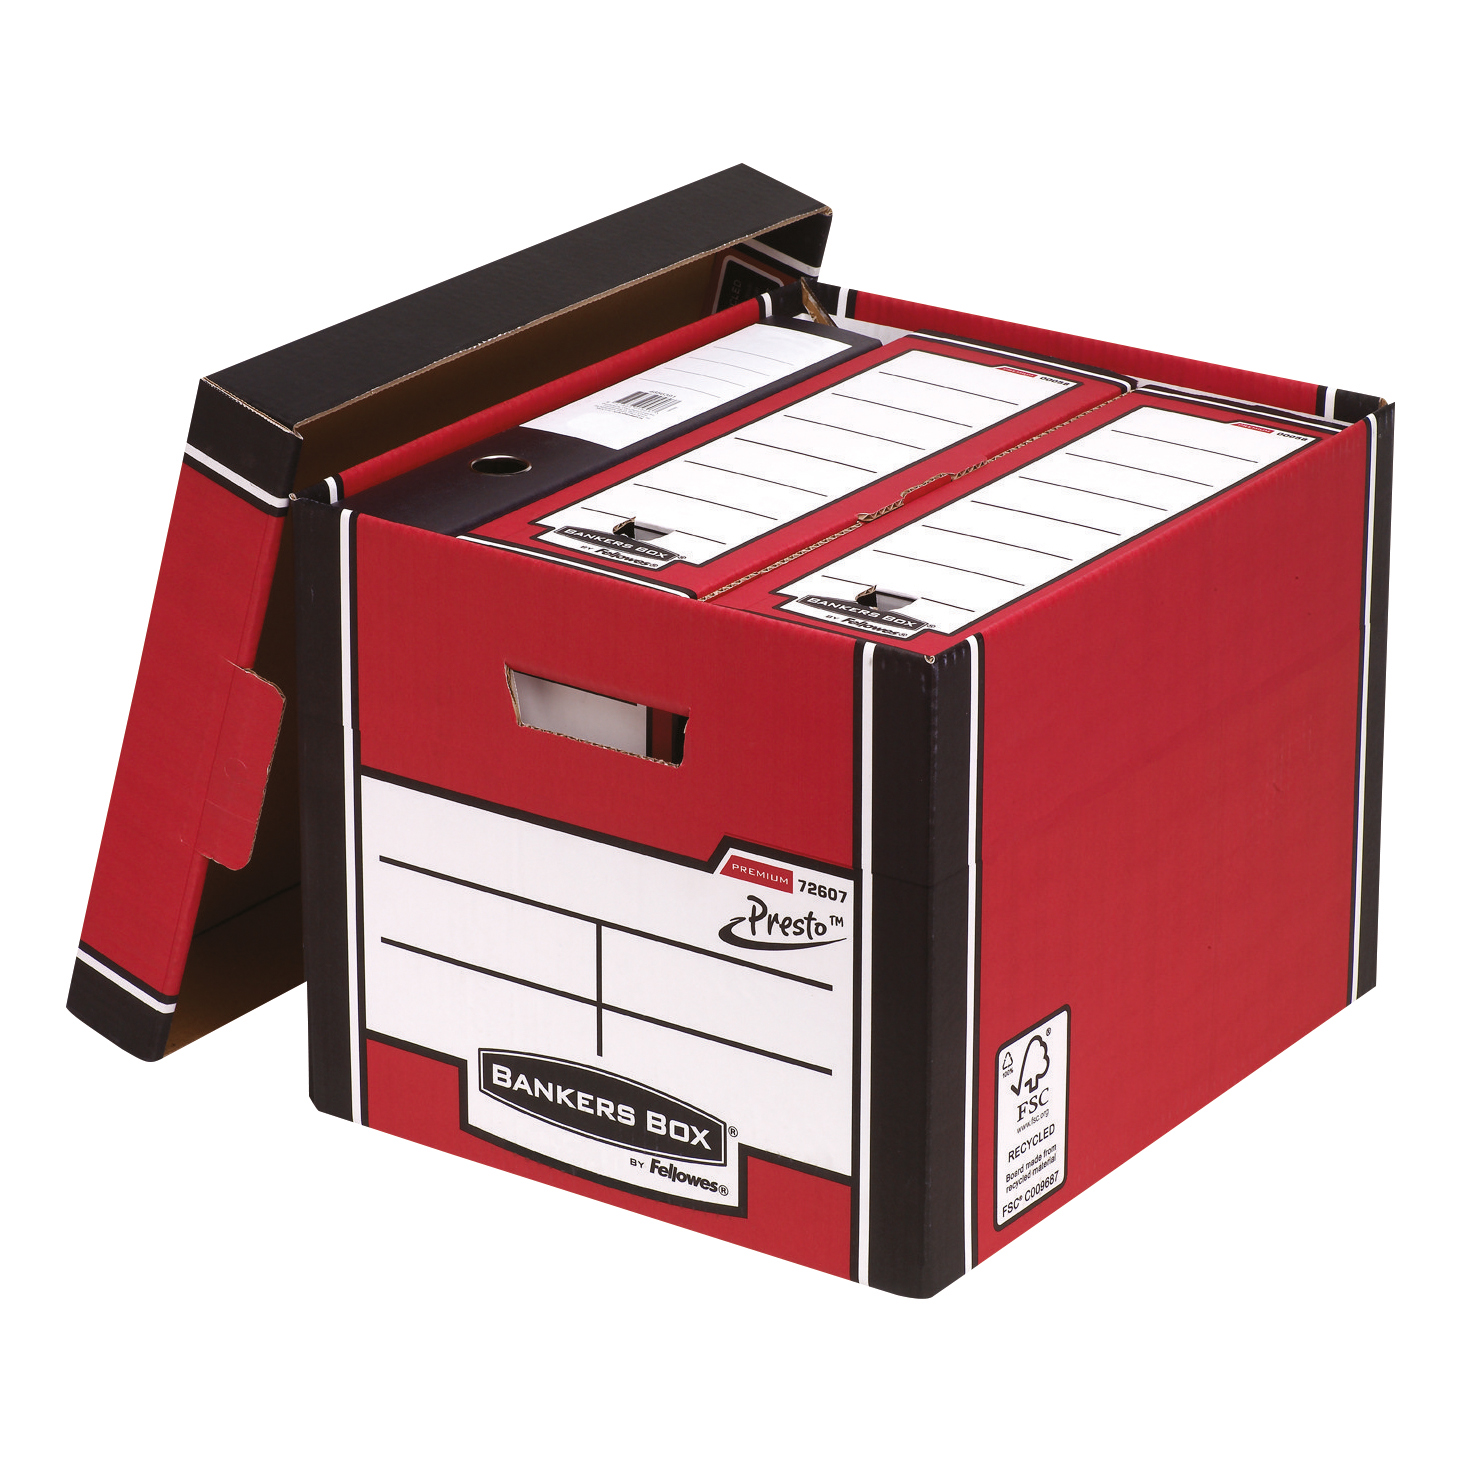 Bankers Box Premium Storage Box Tall FSC Red and White Ref 7260703 Pack 12 2 For 1 Jul 2018